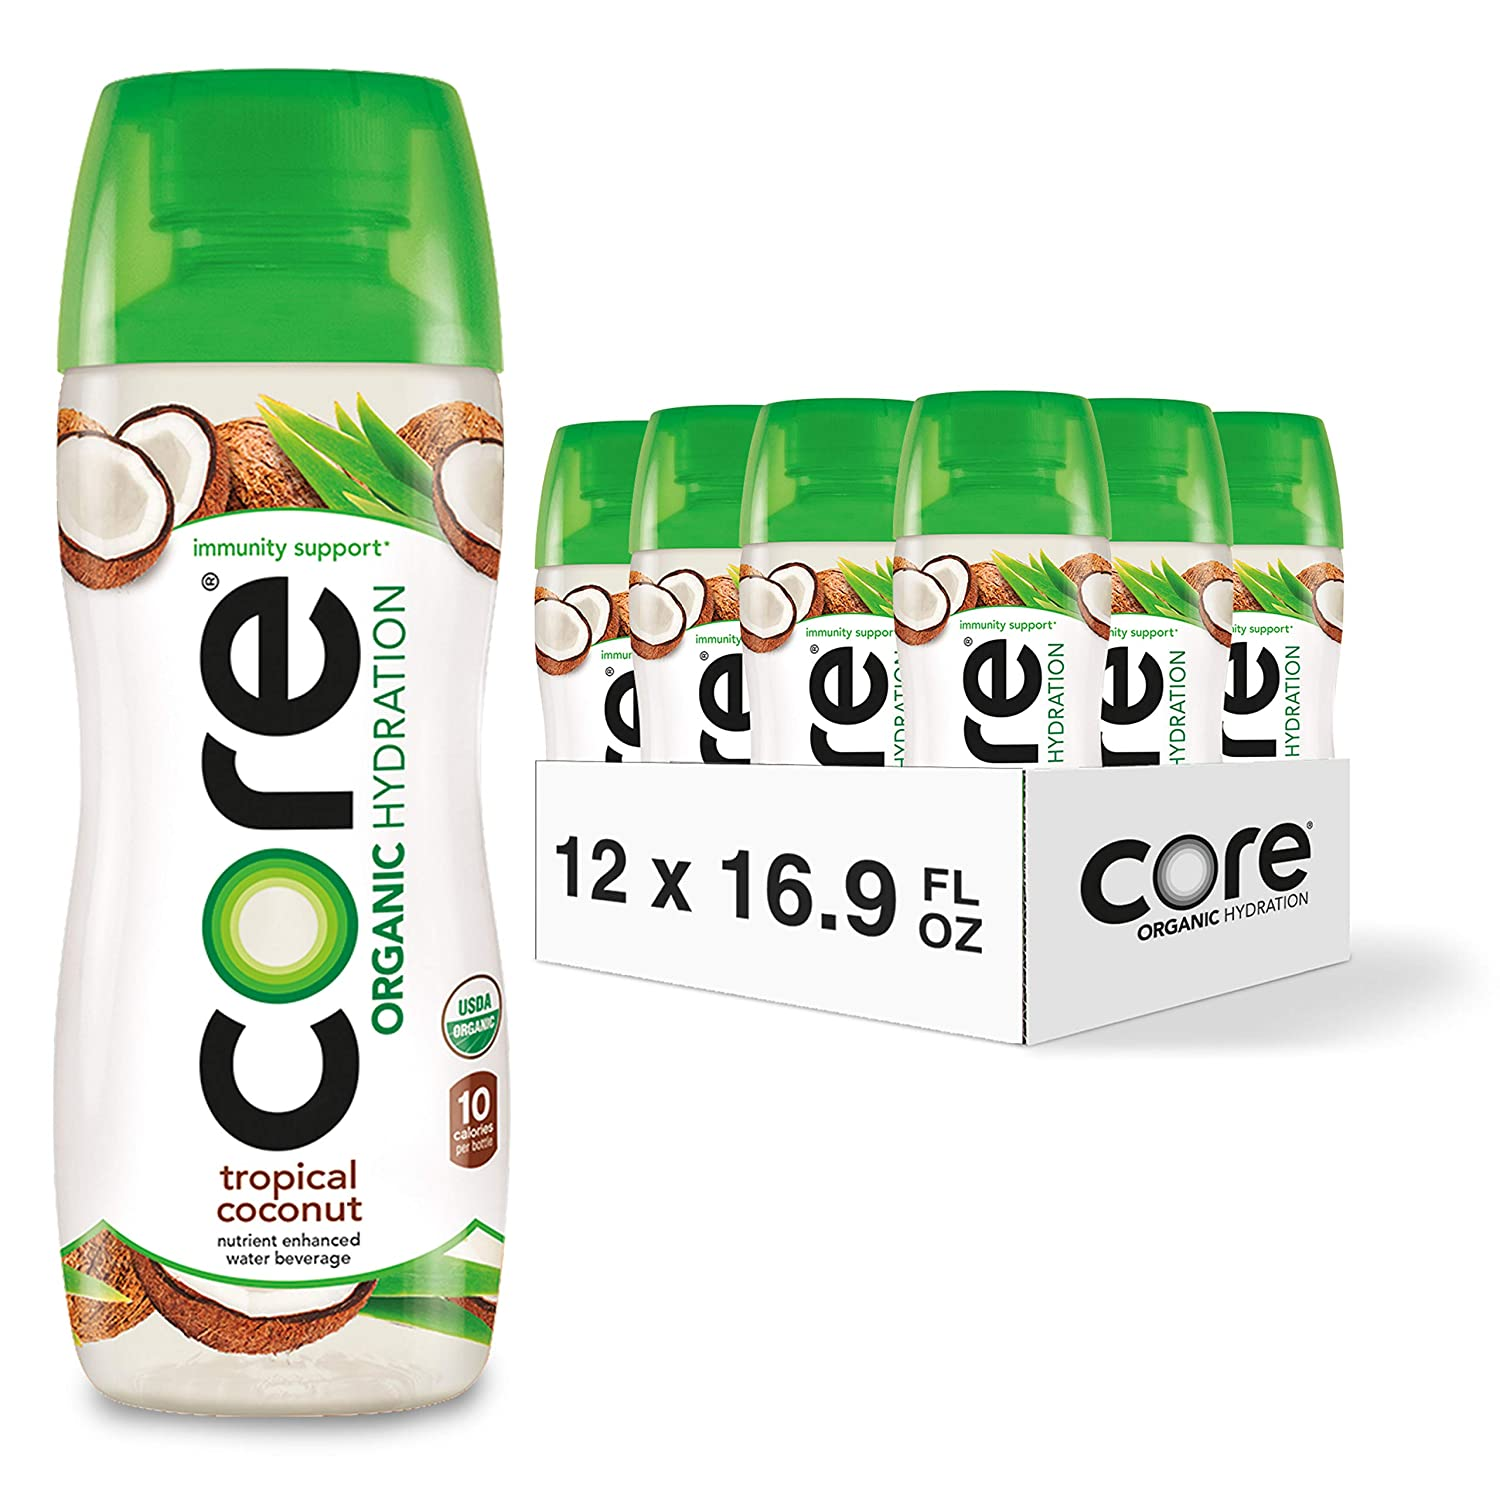 CORE Organic Hydration, Tropical Coconut, 16.9 Fl Oz (Pack of 12), Nutrient Enhanced Flavored Water with Immunity Support from Zinc, USDA Certified Organic